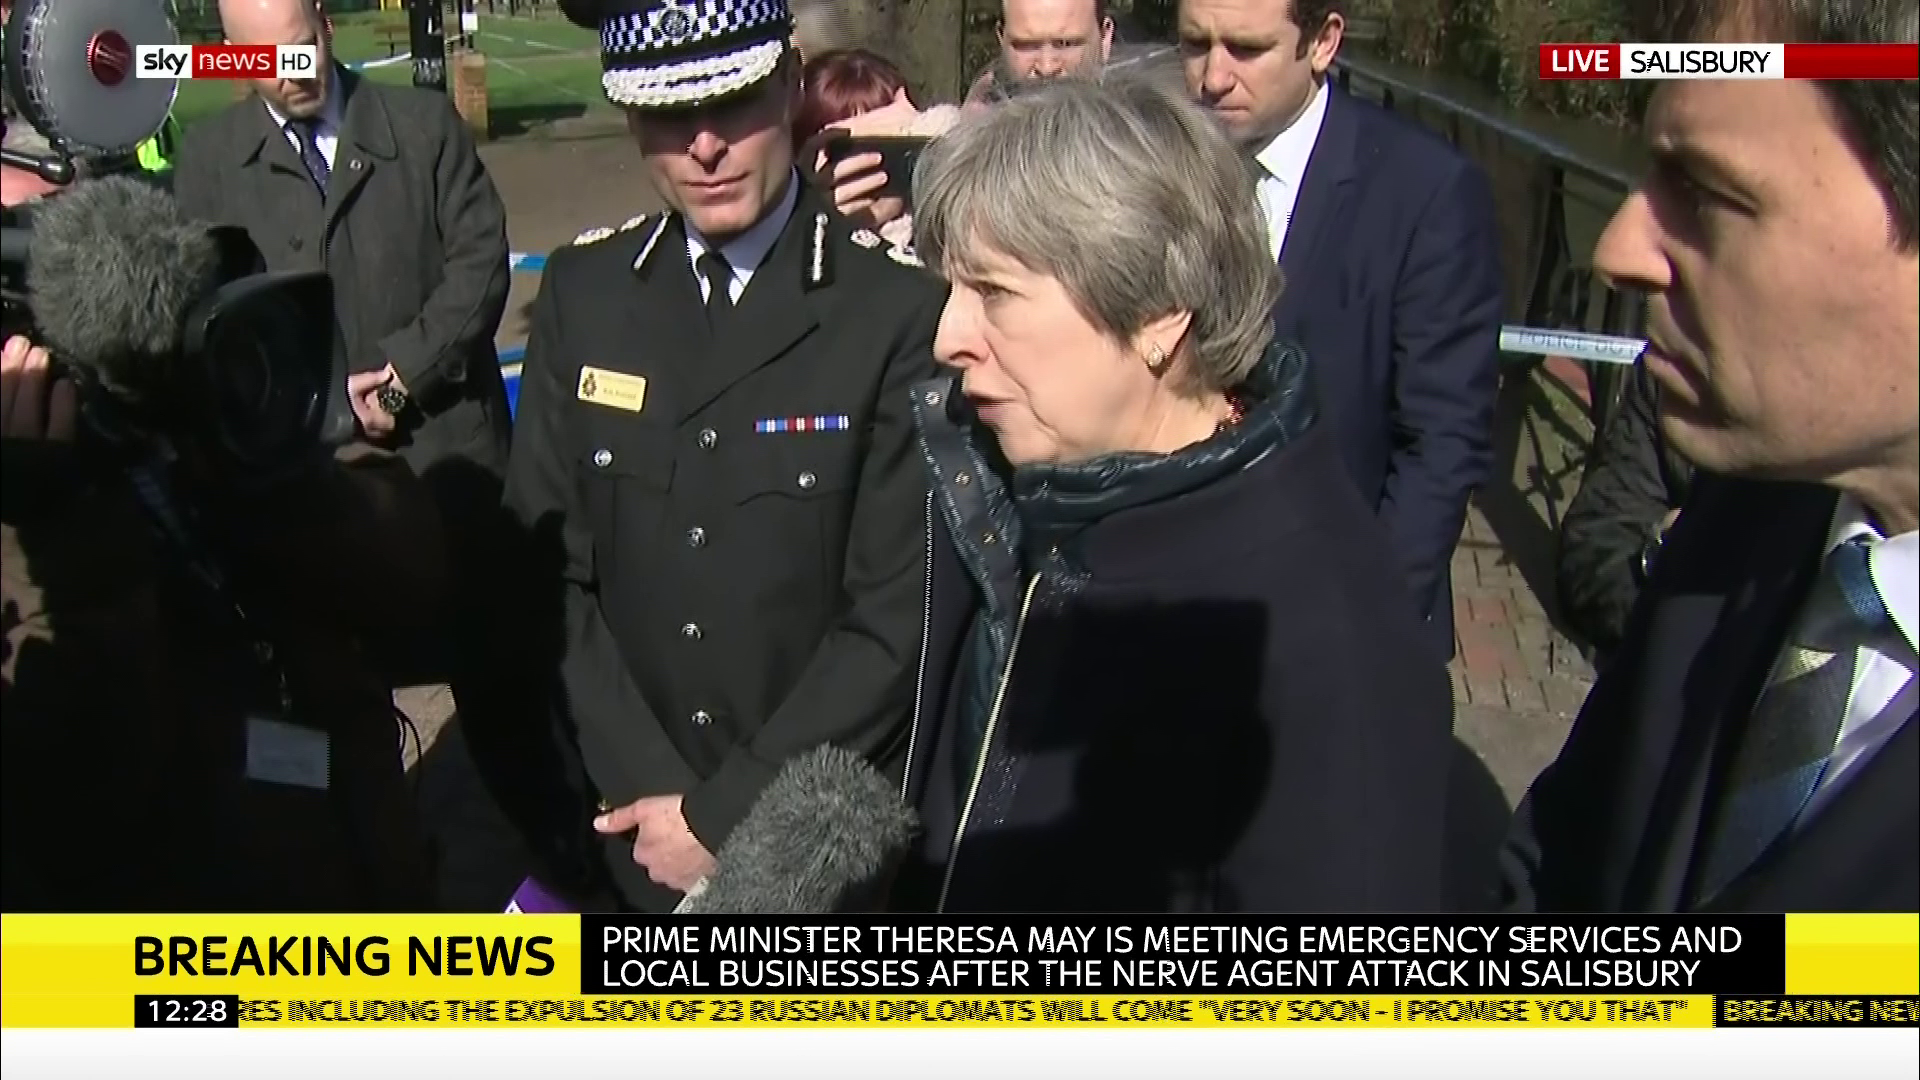 Theresa May arrives in Salisbury in aftermath of poison attack as Russia vows to kick out British diplomats in revenge for spy crackdown